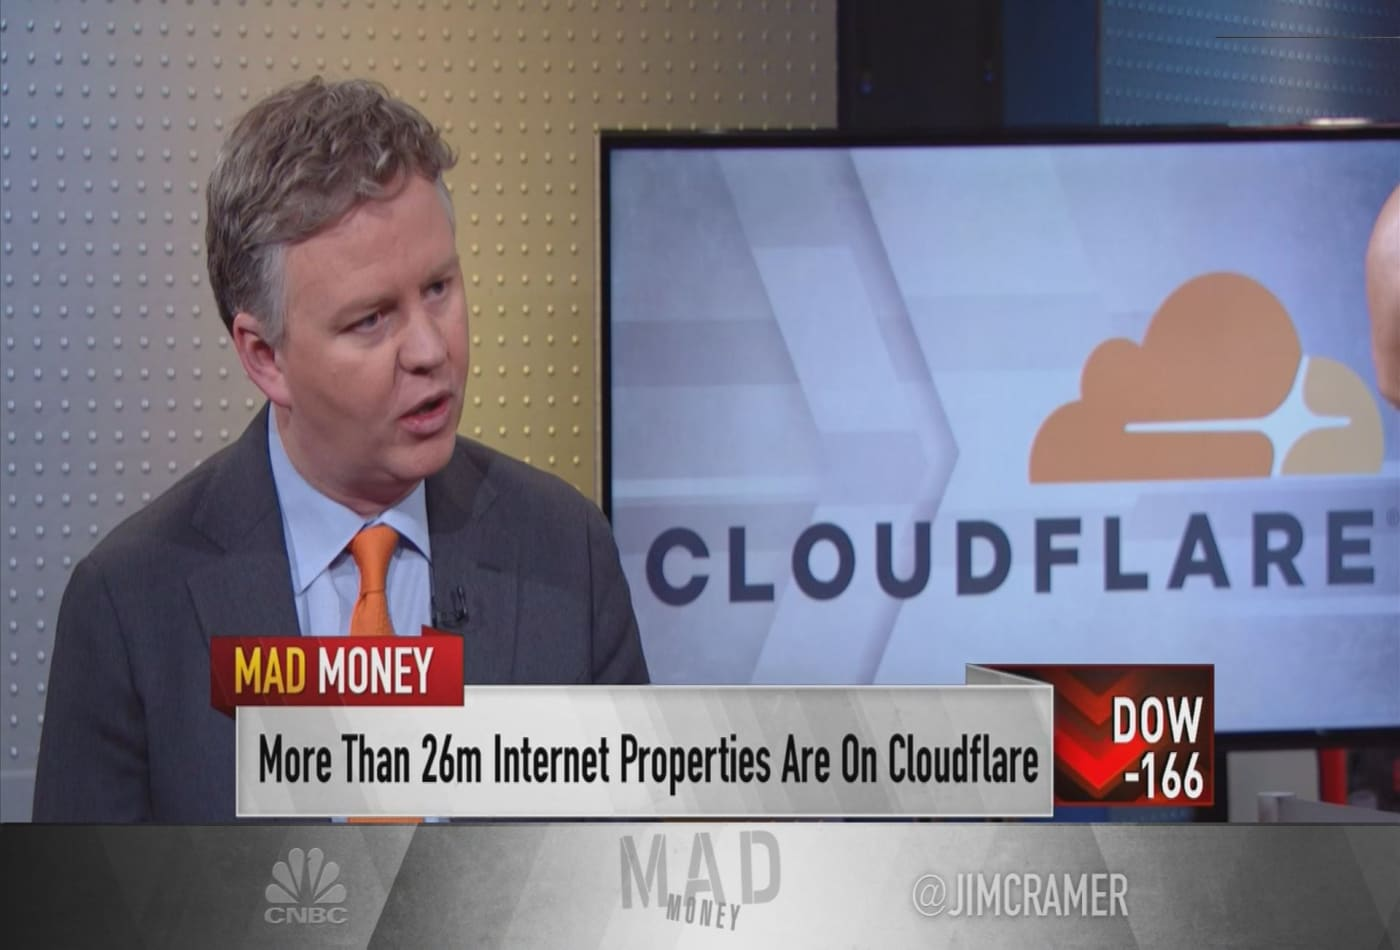 Cloudflare CEO talks supplying 2020 candidates, enterprises with cloud security